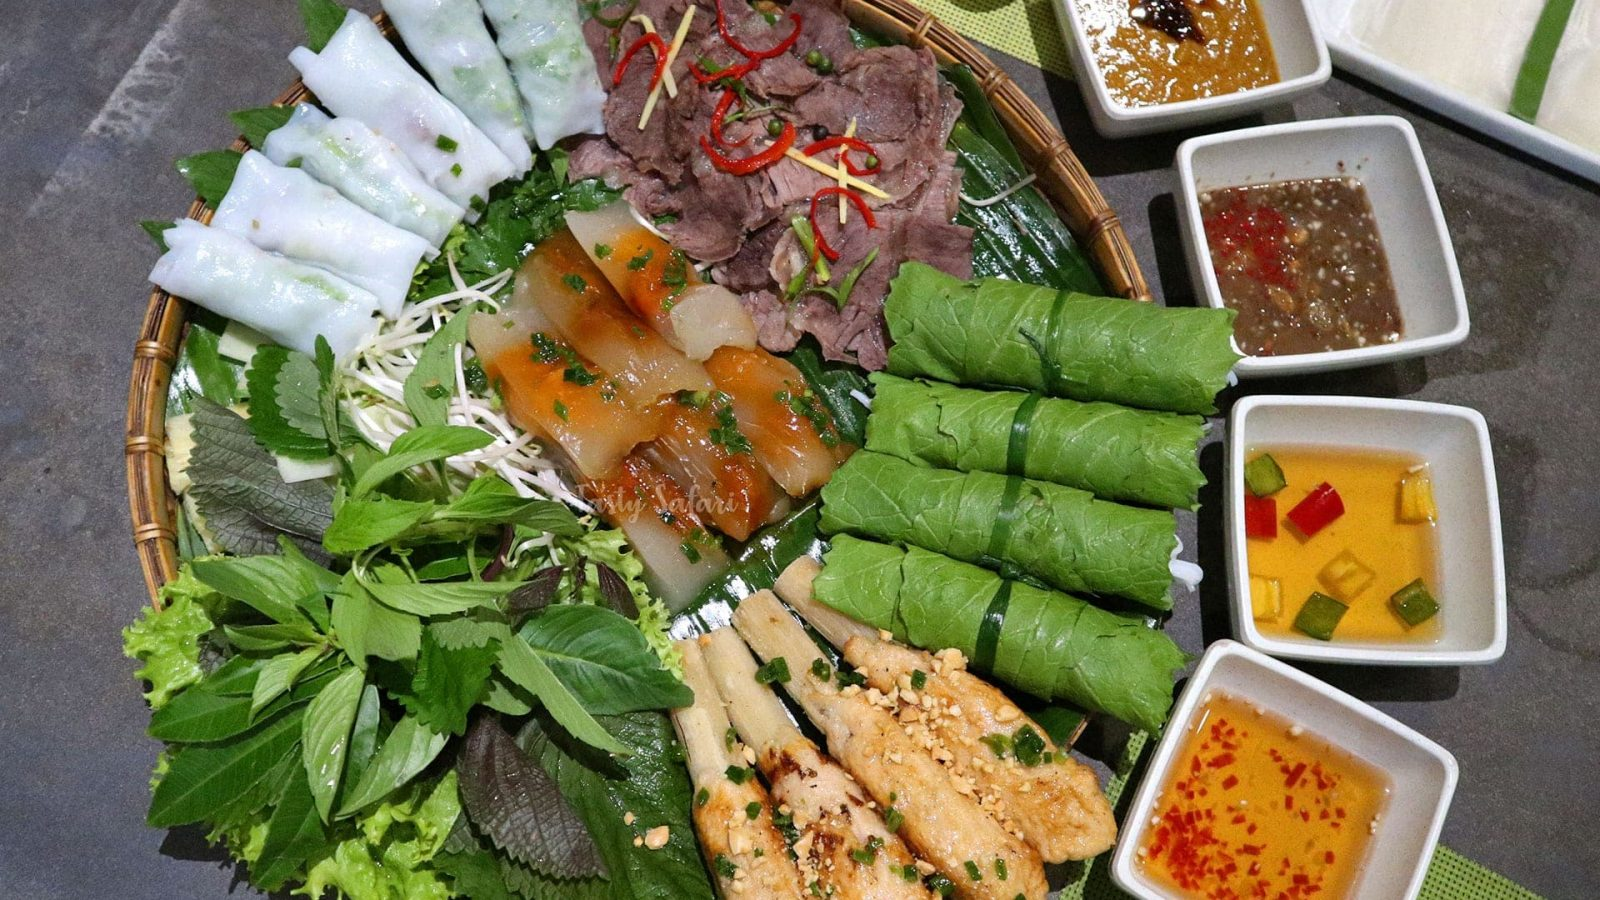 Freshness and balance. The two words that perfectly describe Vietnamese cooking. The flavors are salty, sour, sweet and spicy. The ingredients are fresh seafood, meat, vegetables and herbs. Delectable and tantalizing. Even the drinks are unforgettable!